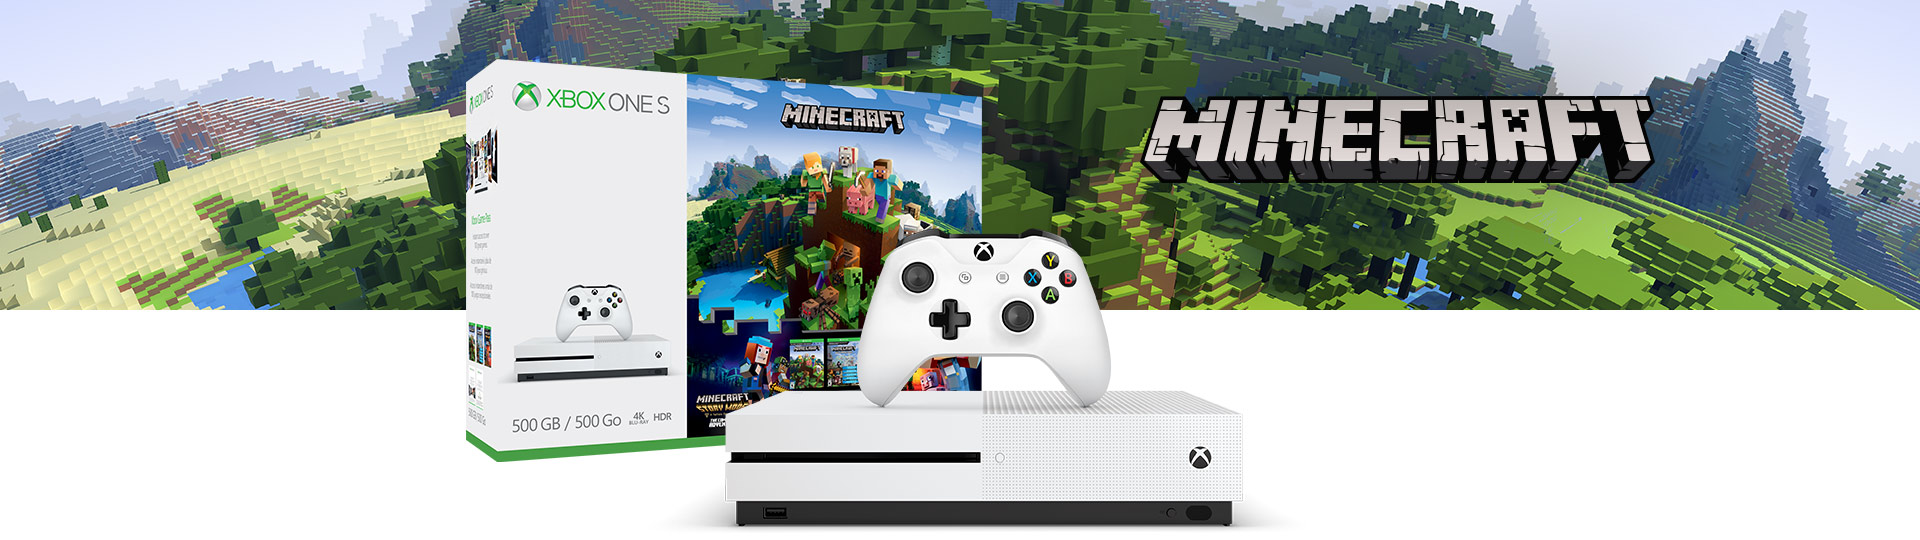 Paquete Minecraft Complete Adventure (500 GB) para Xbox One S